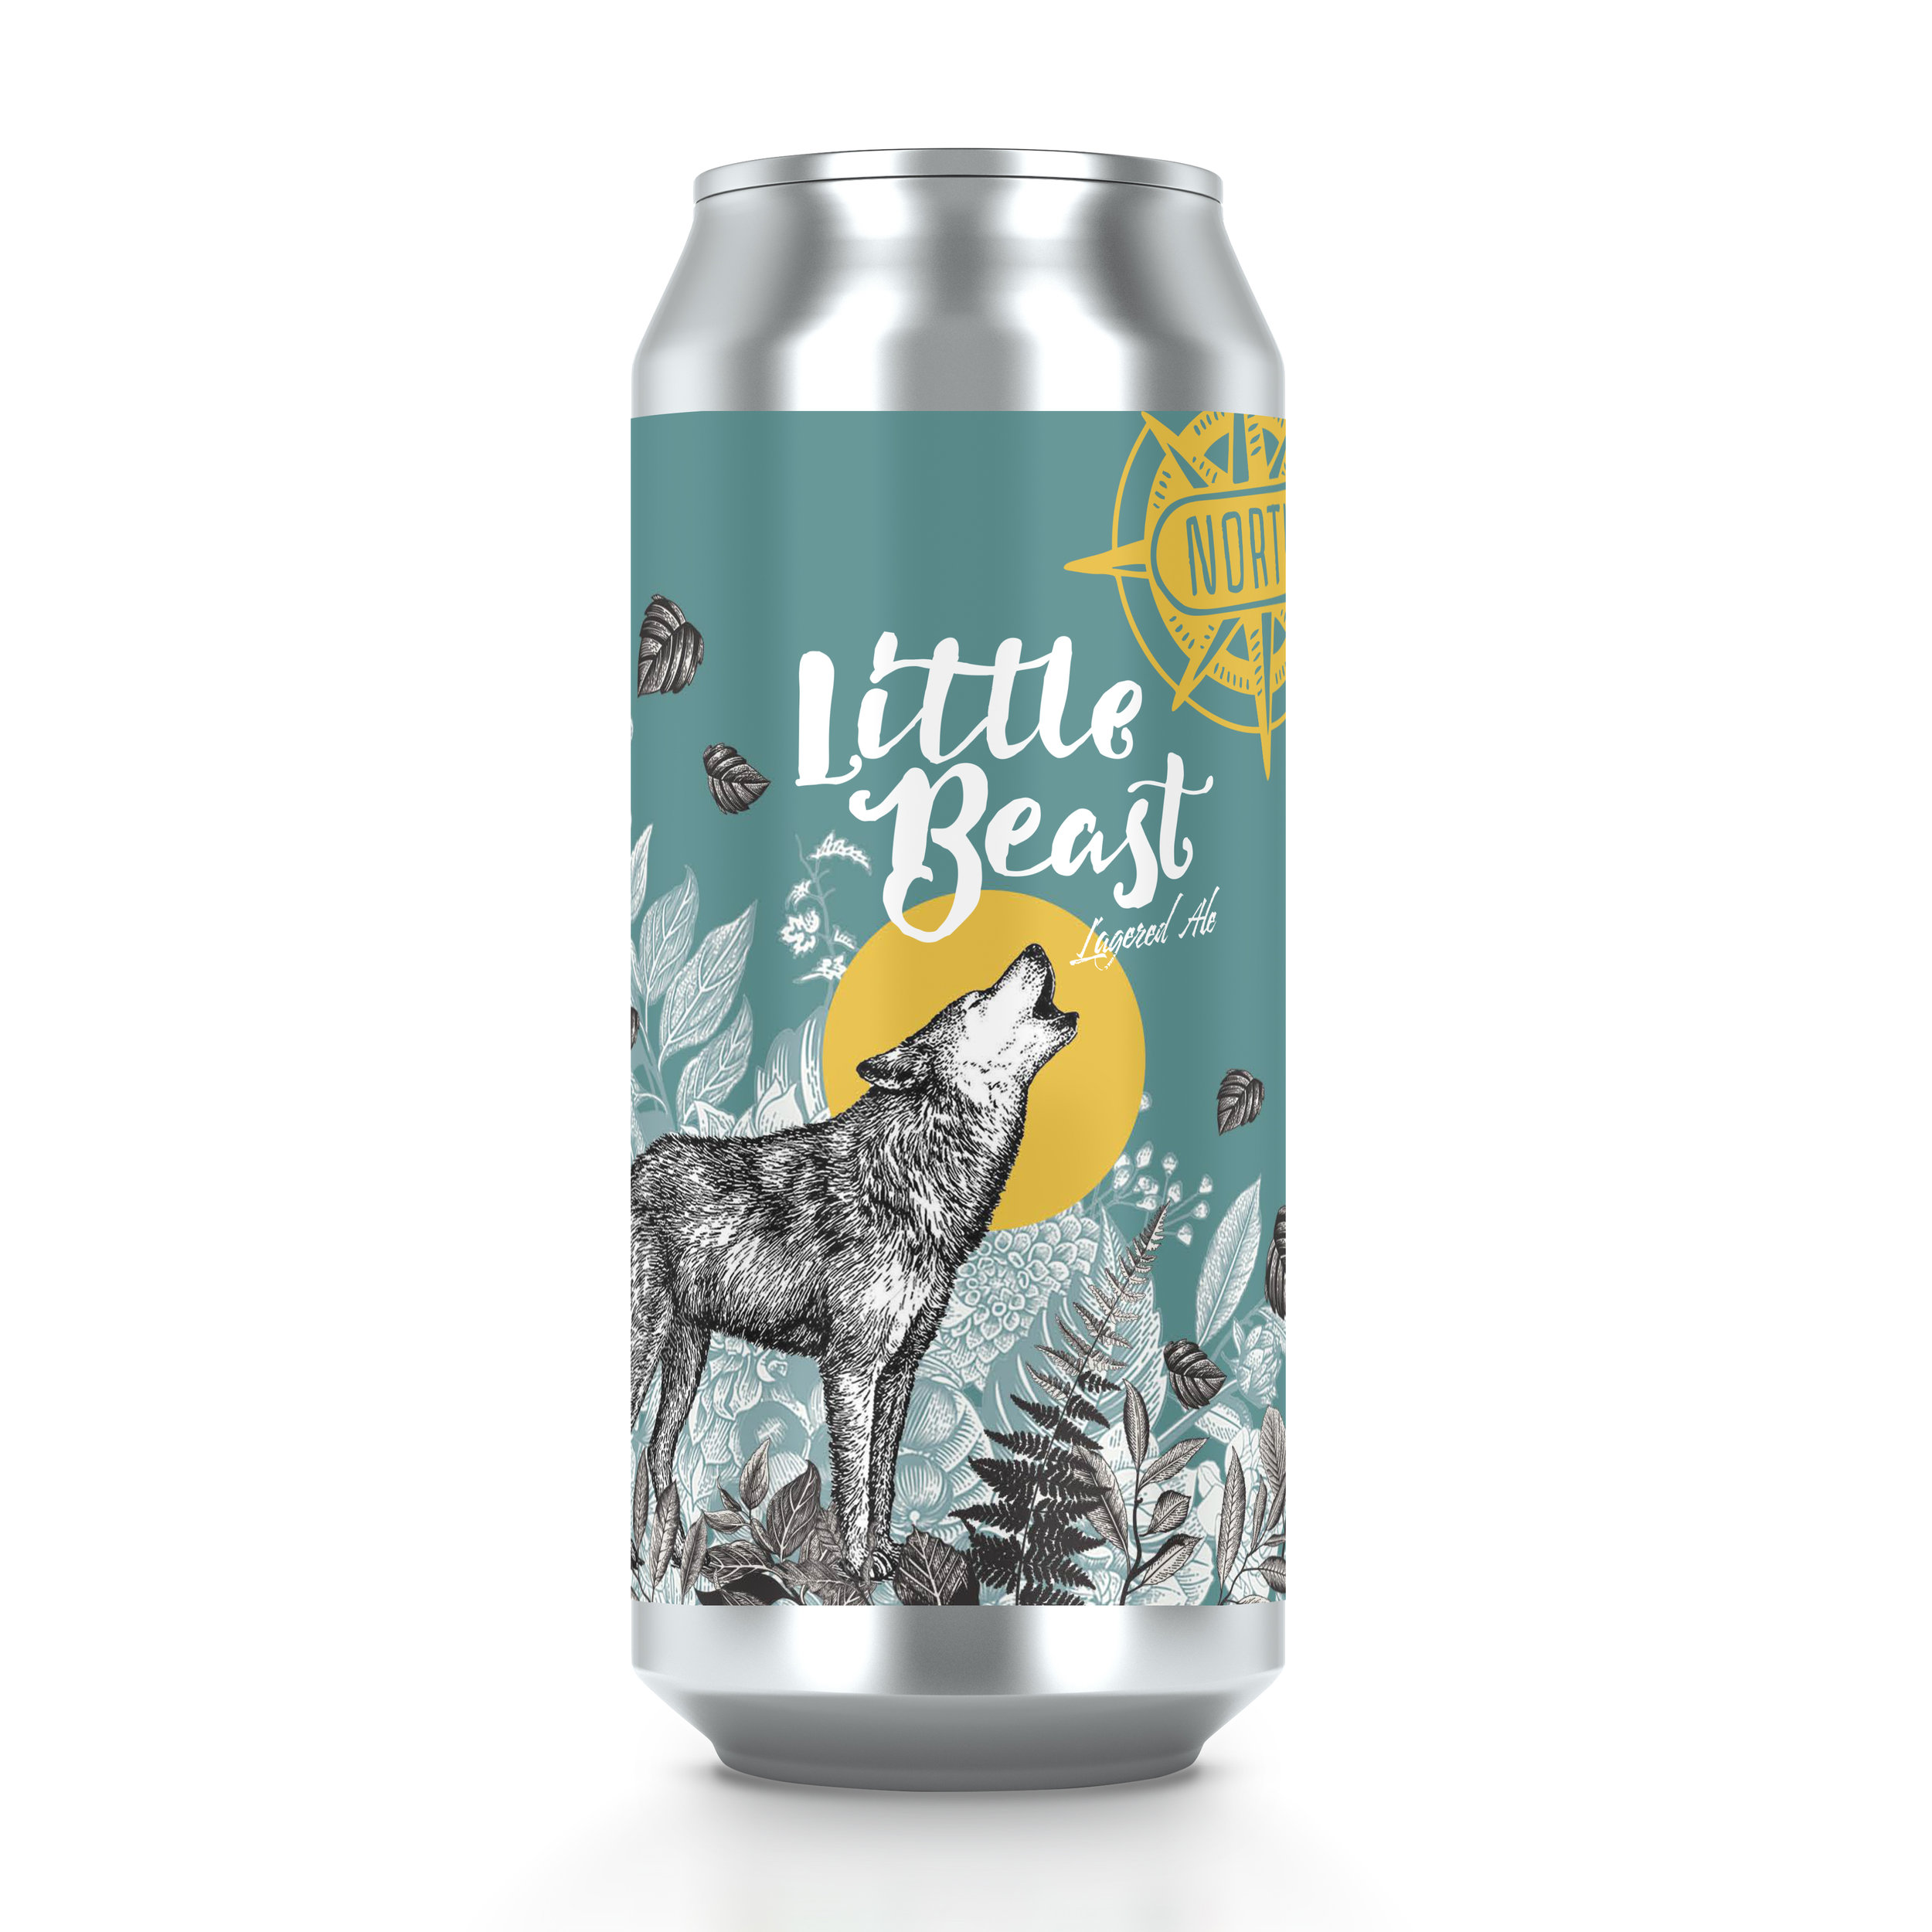 Little Beast Lagered Ale    ABV 4%    Yeast: California Ale Yeast (White Labs)